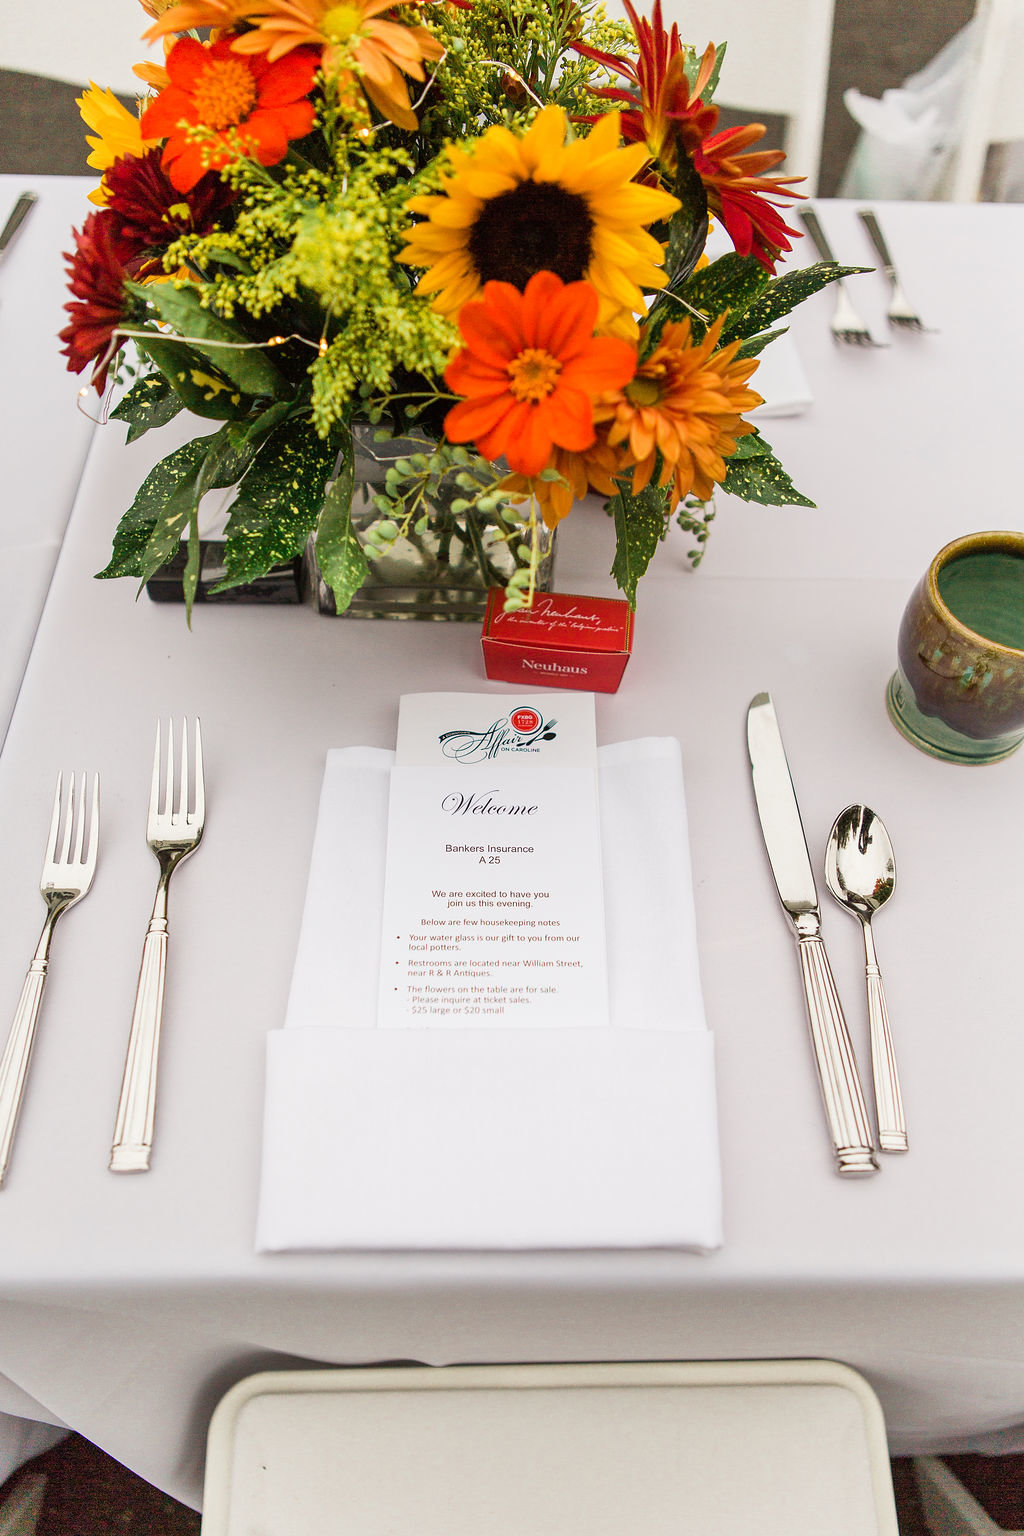 affair-on-caroline-street-fredericksburg-virginia-community-dinner-happy-to-be-events1684